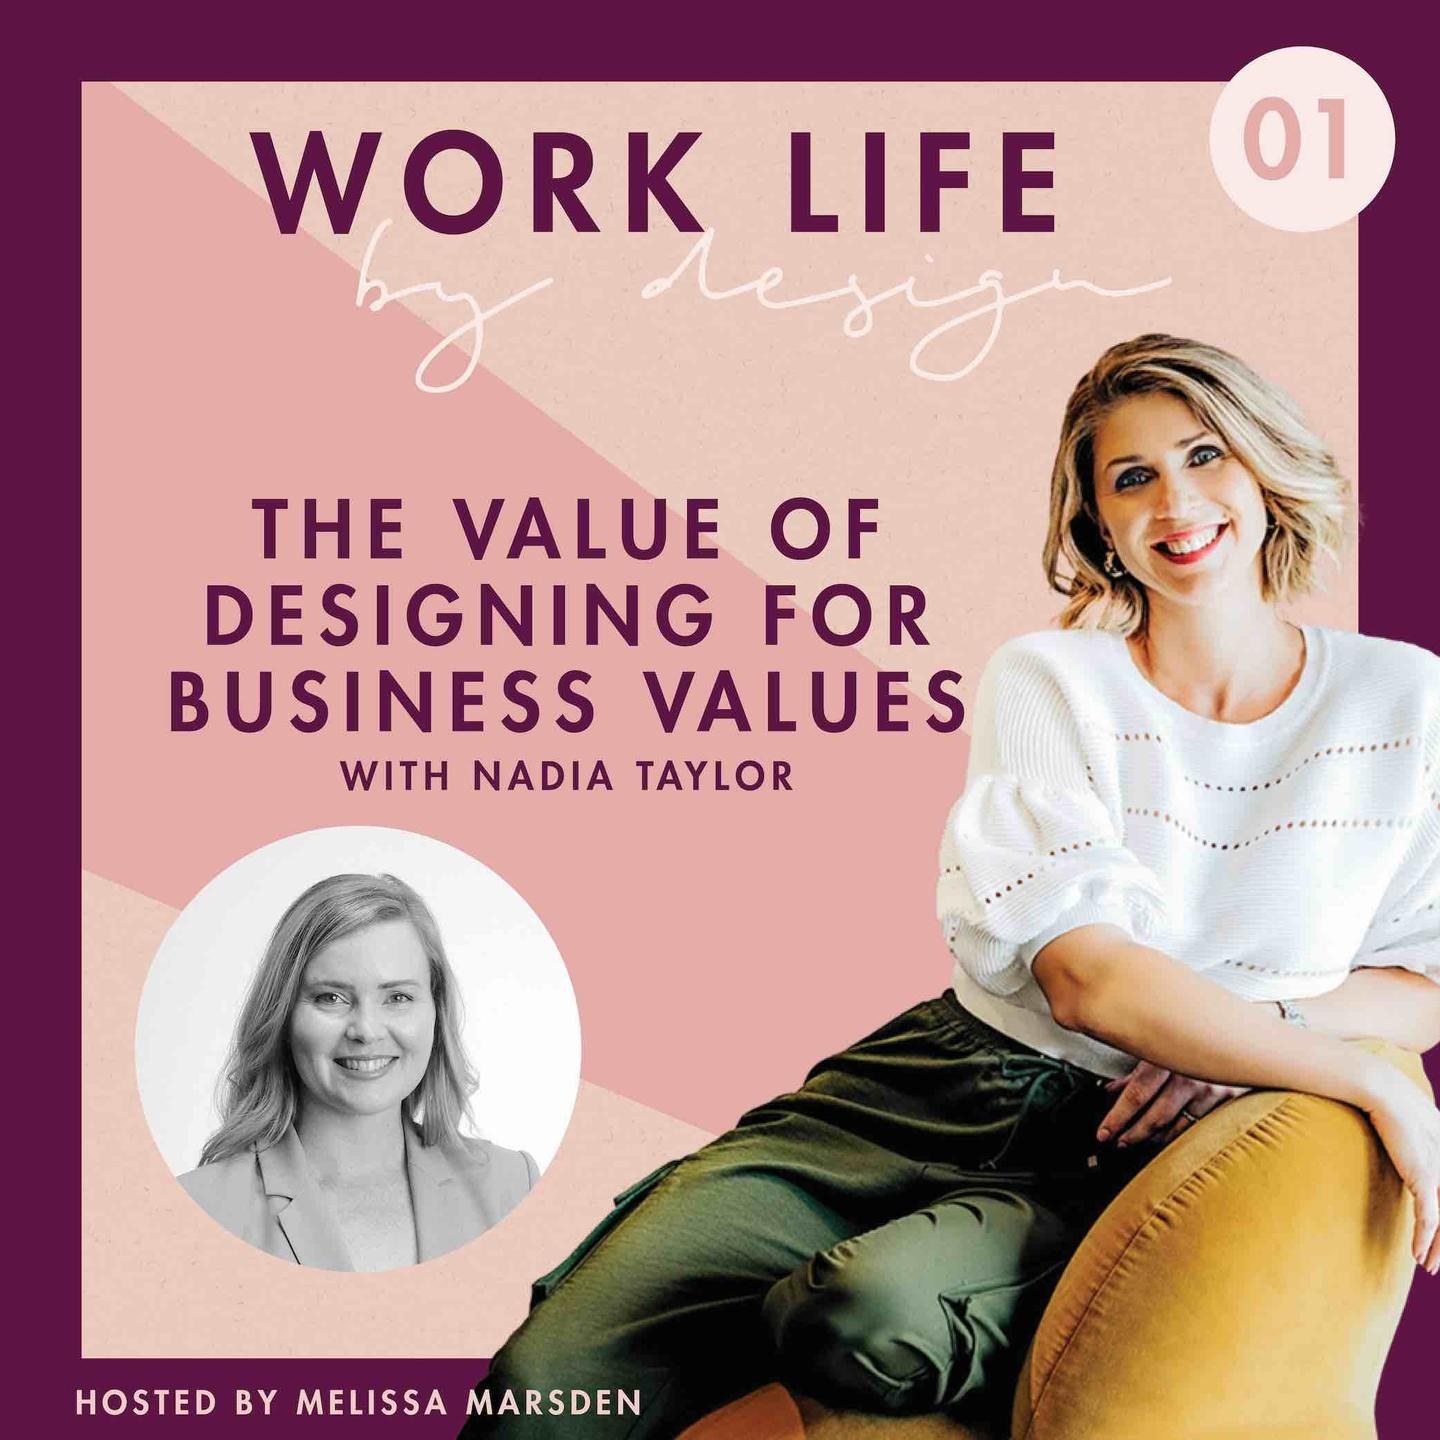 The Value in Designing for Business Values with Nadia Taylor | Work life by design podcast Melissa Marsden